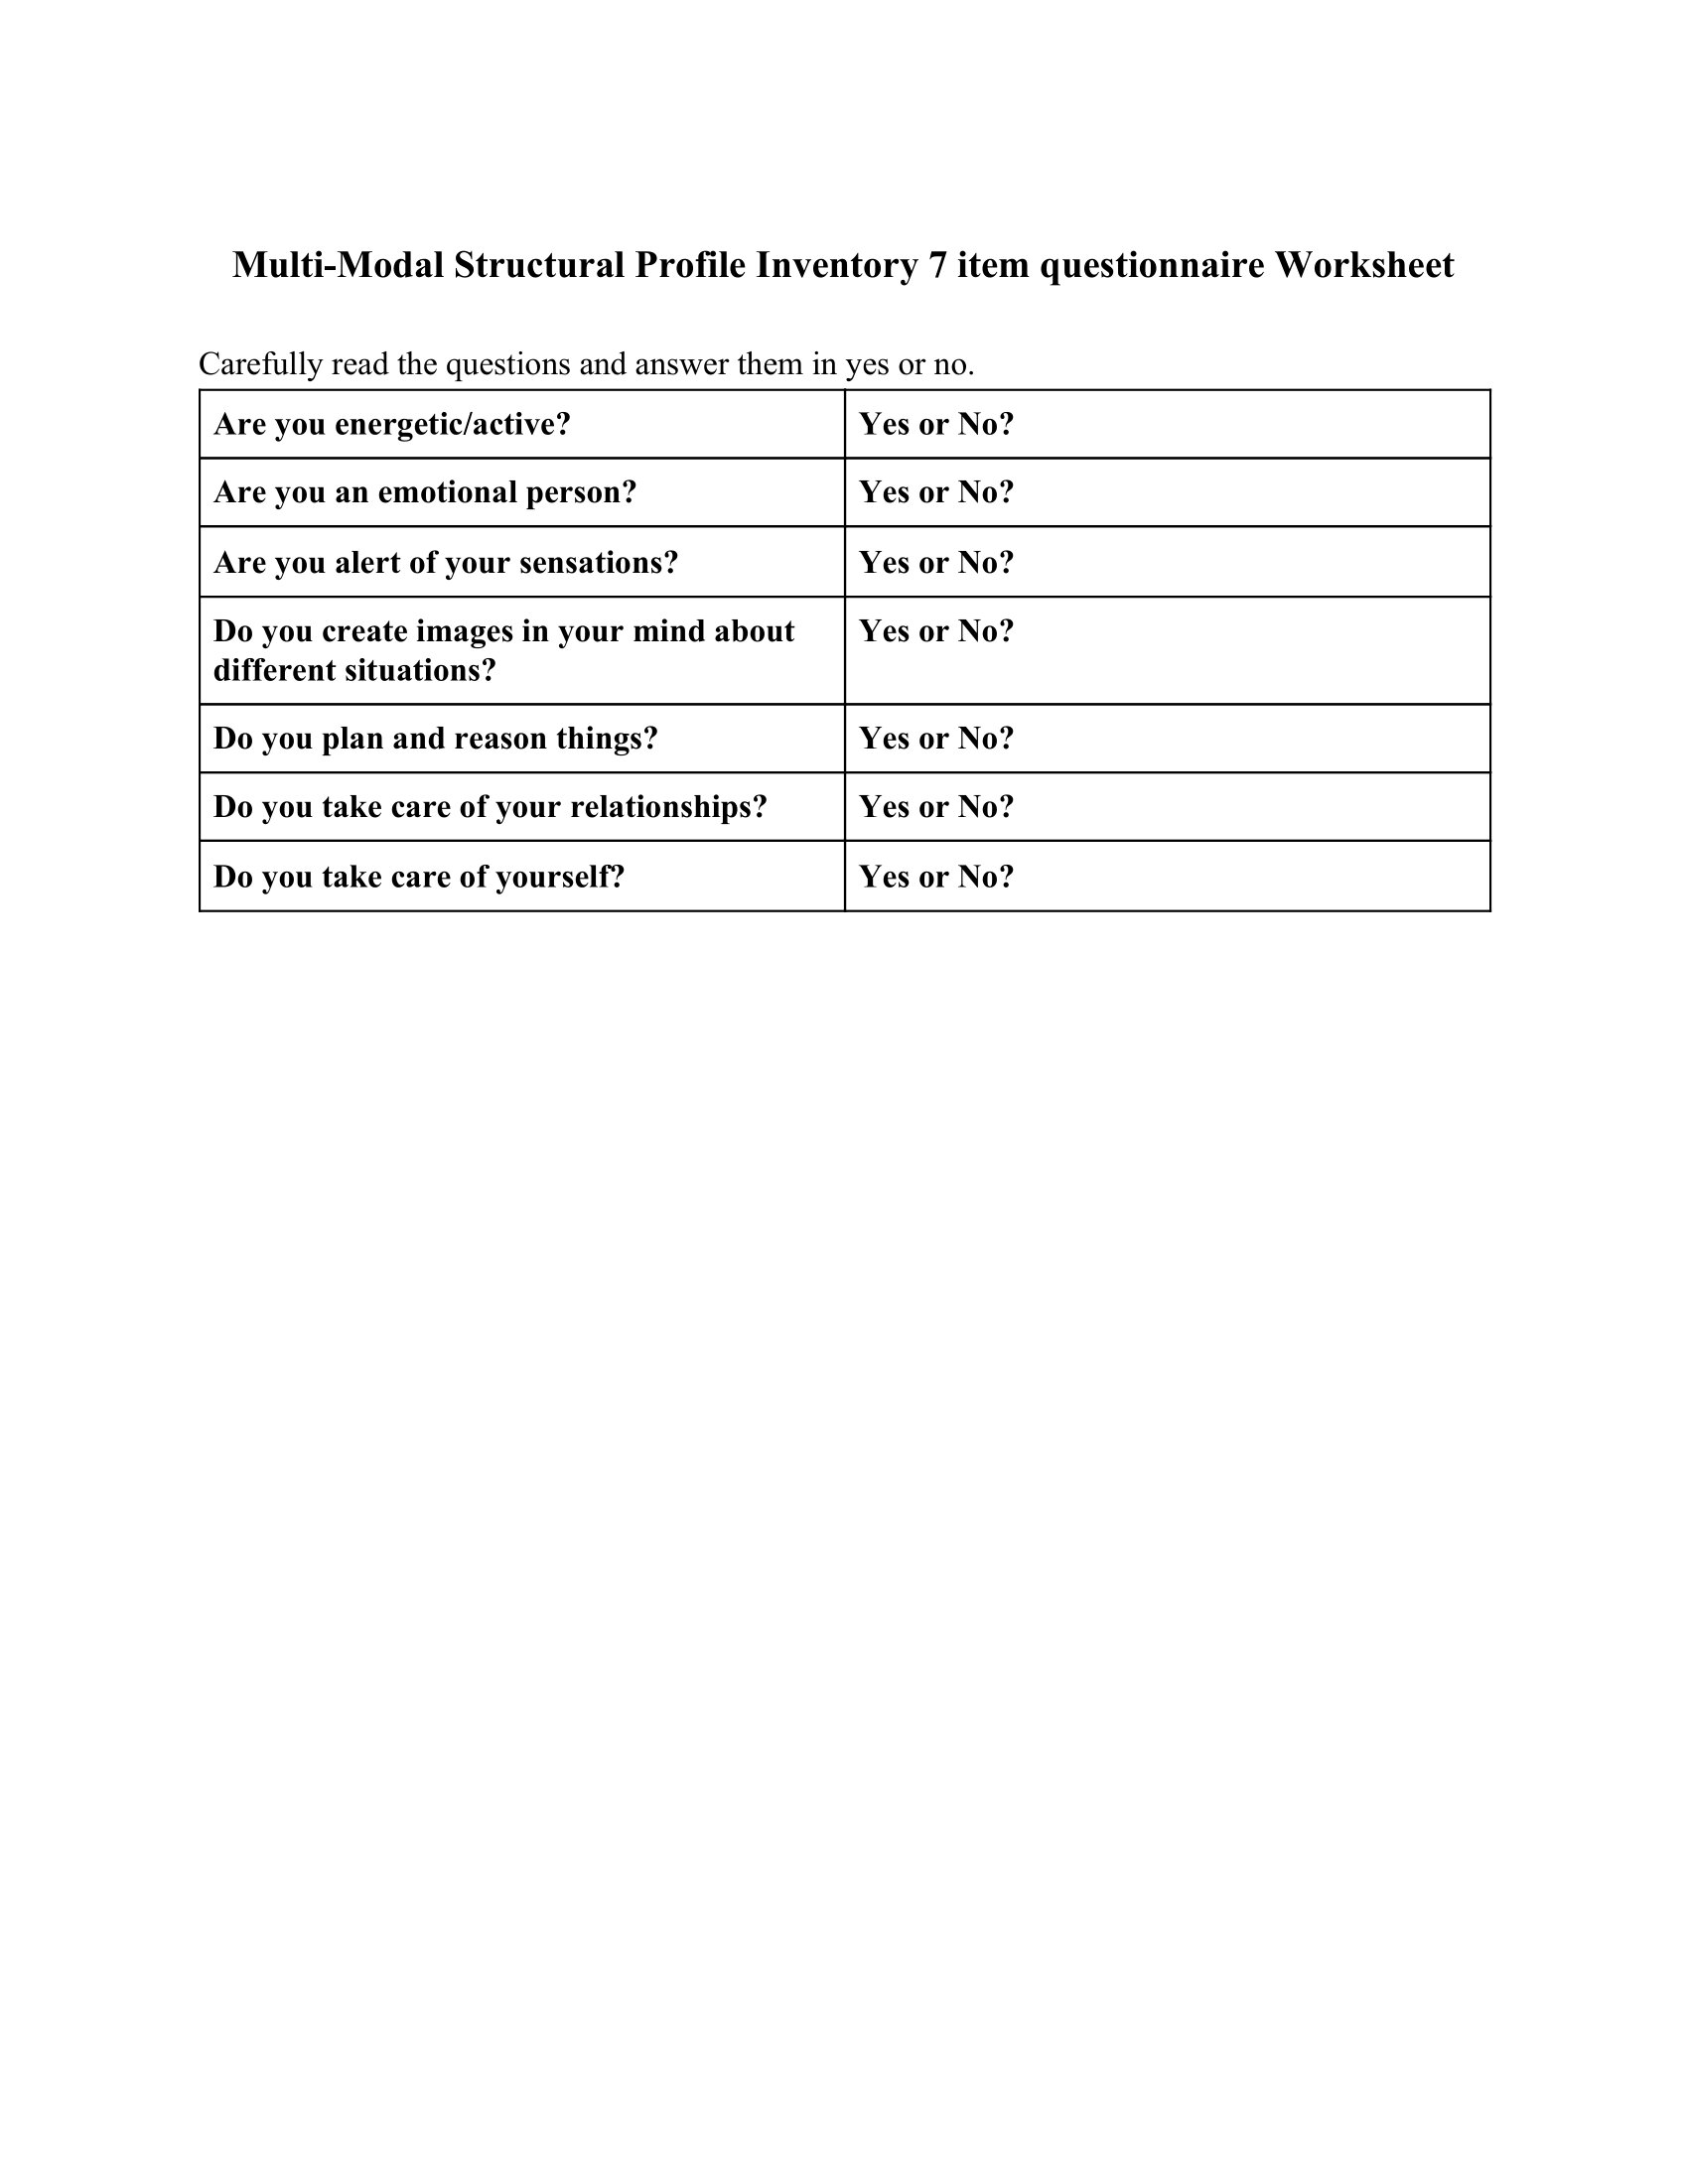 Multi-Modal Structural Profile Inventory 7 item questionnaire Worksheet